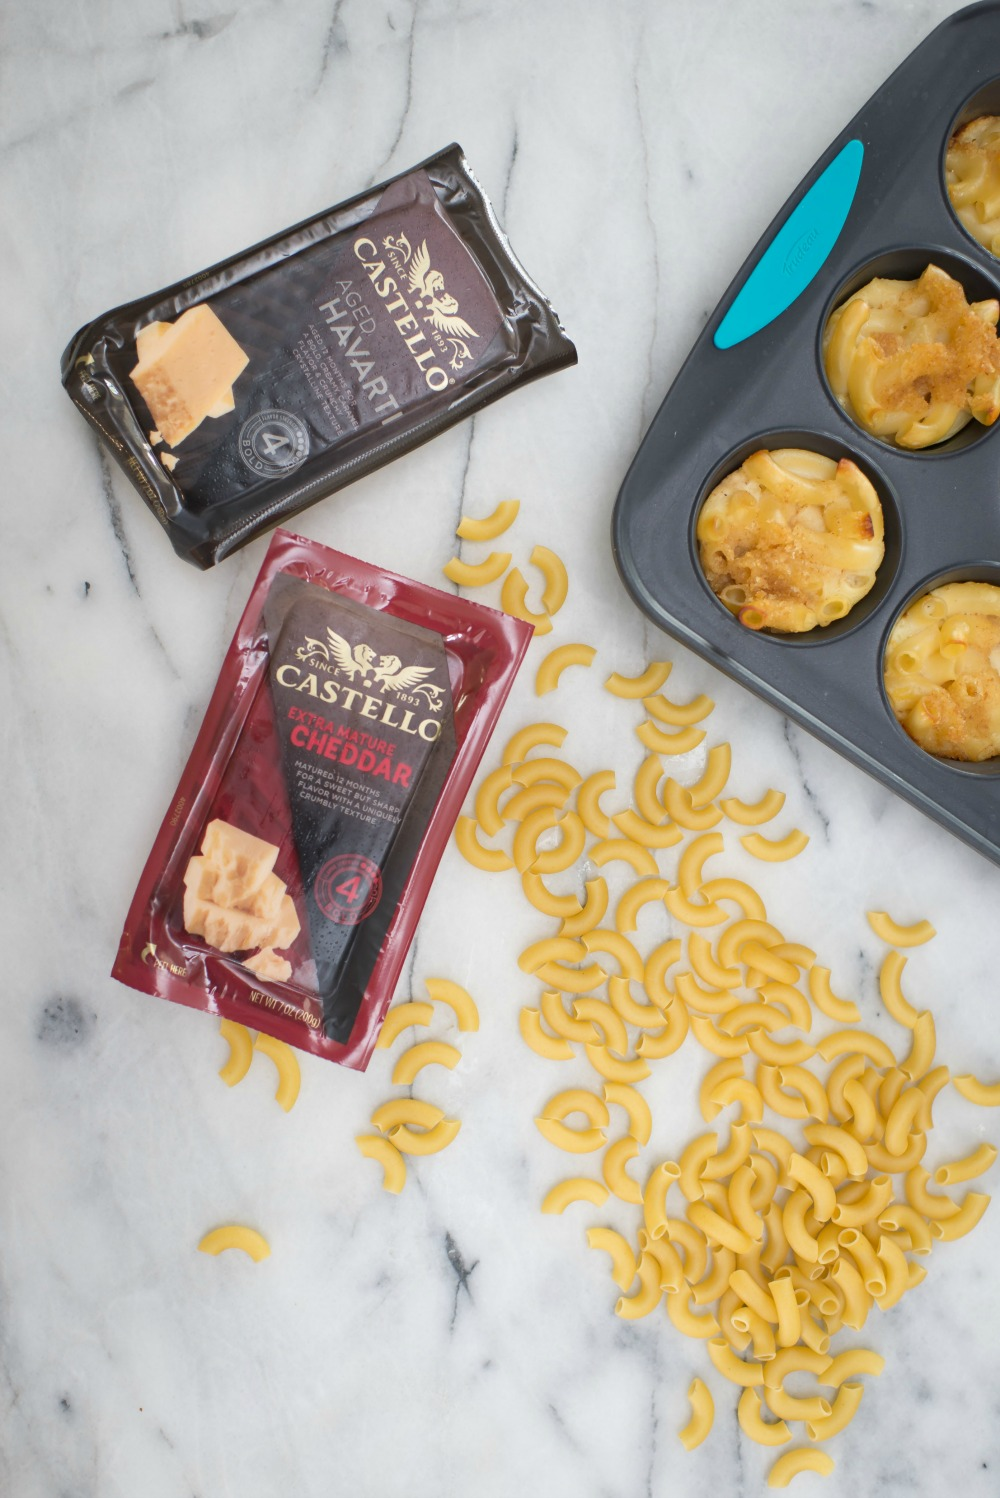 #recipes #macandcheese #dinner | Recipes | How To | Dinner on the Go: Mac & Cheese Muffins featured by top Florida lifestyle blog The Modern Savvy